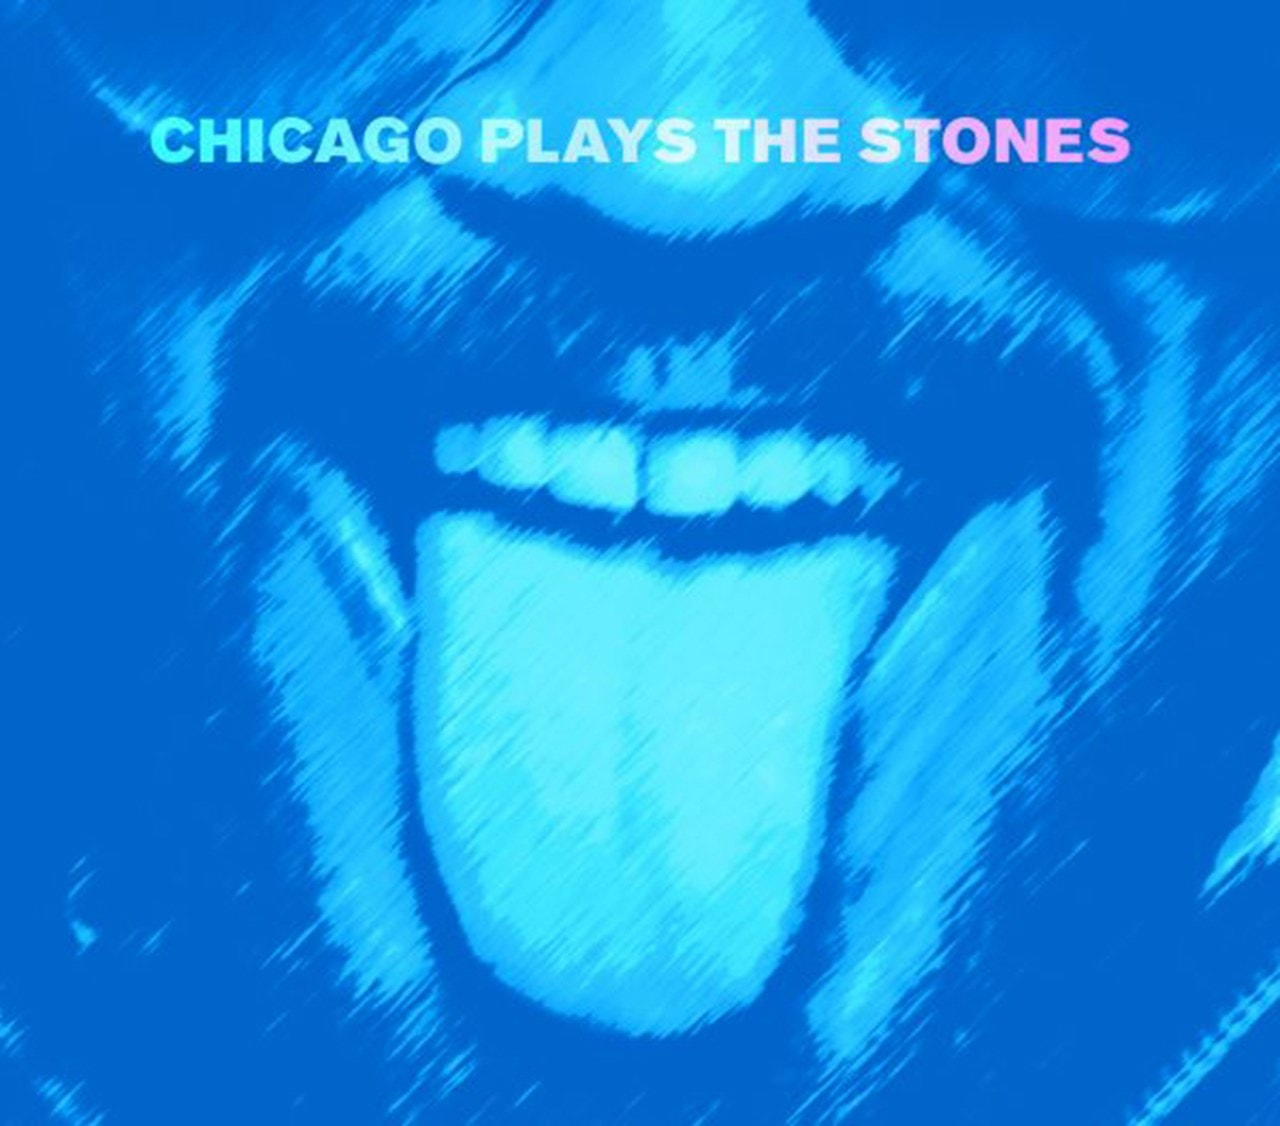 Chicago Plays the Stones - 1